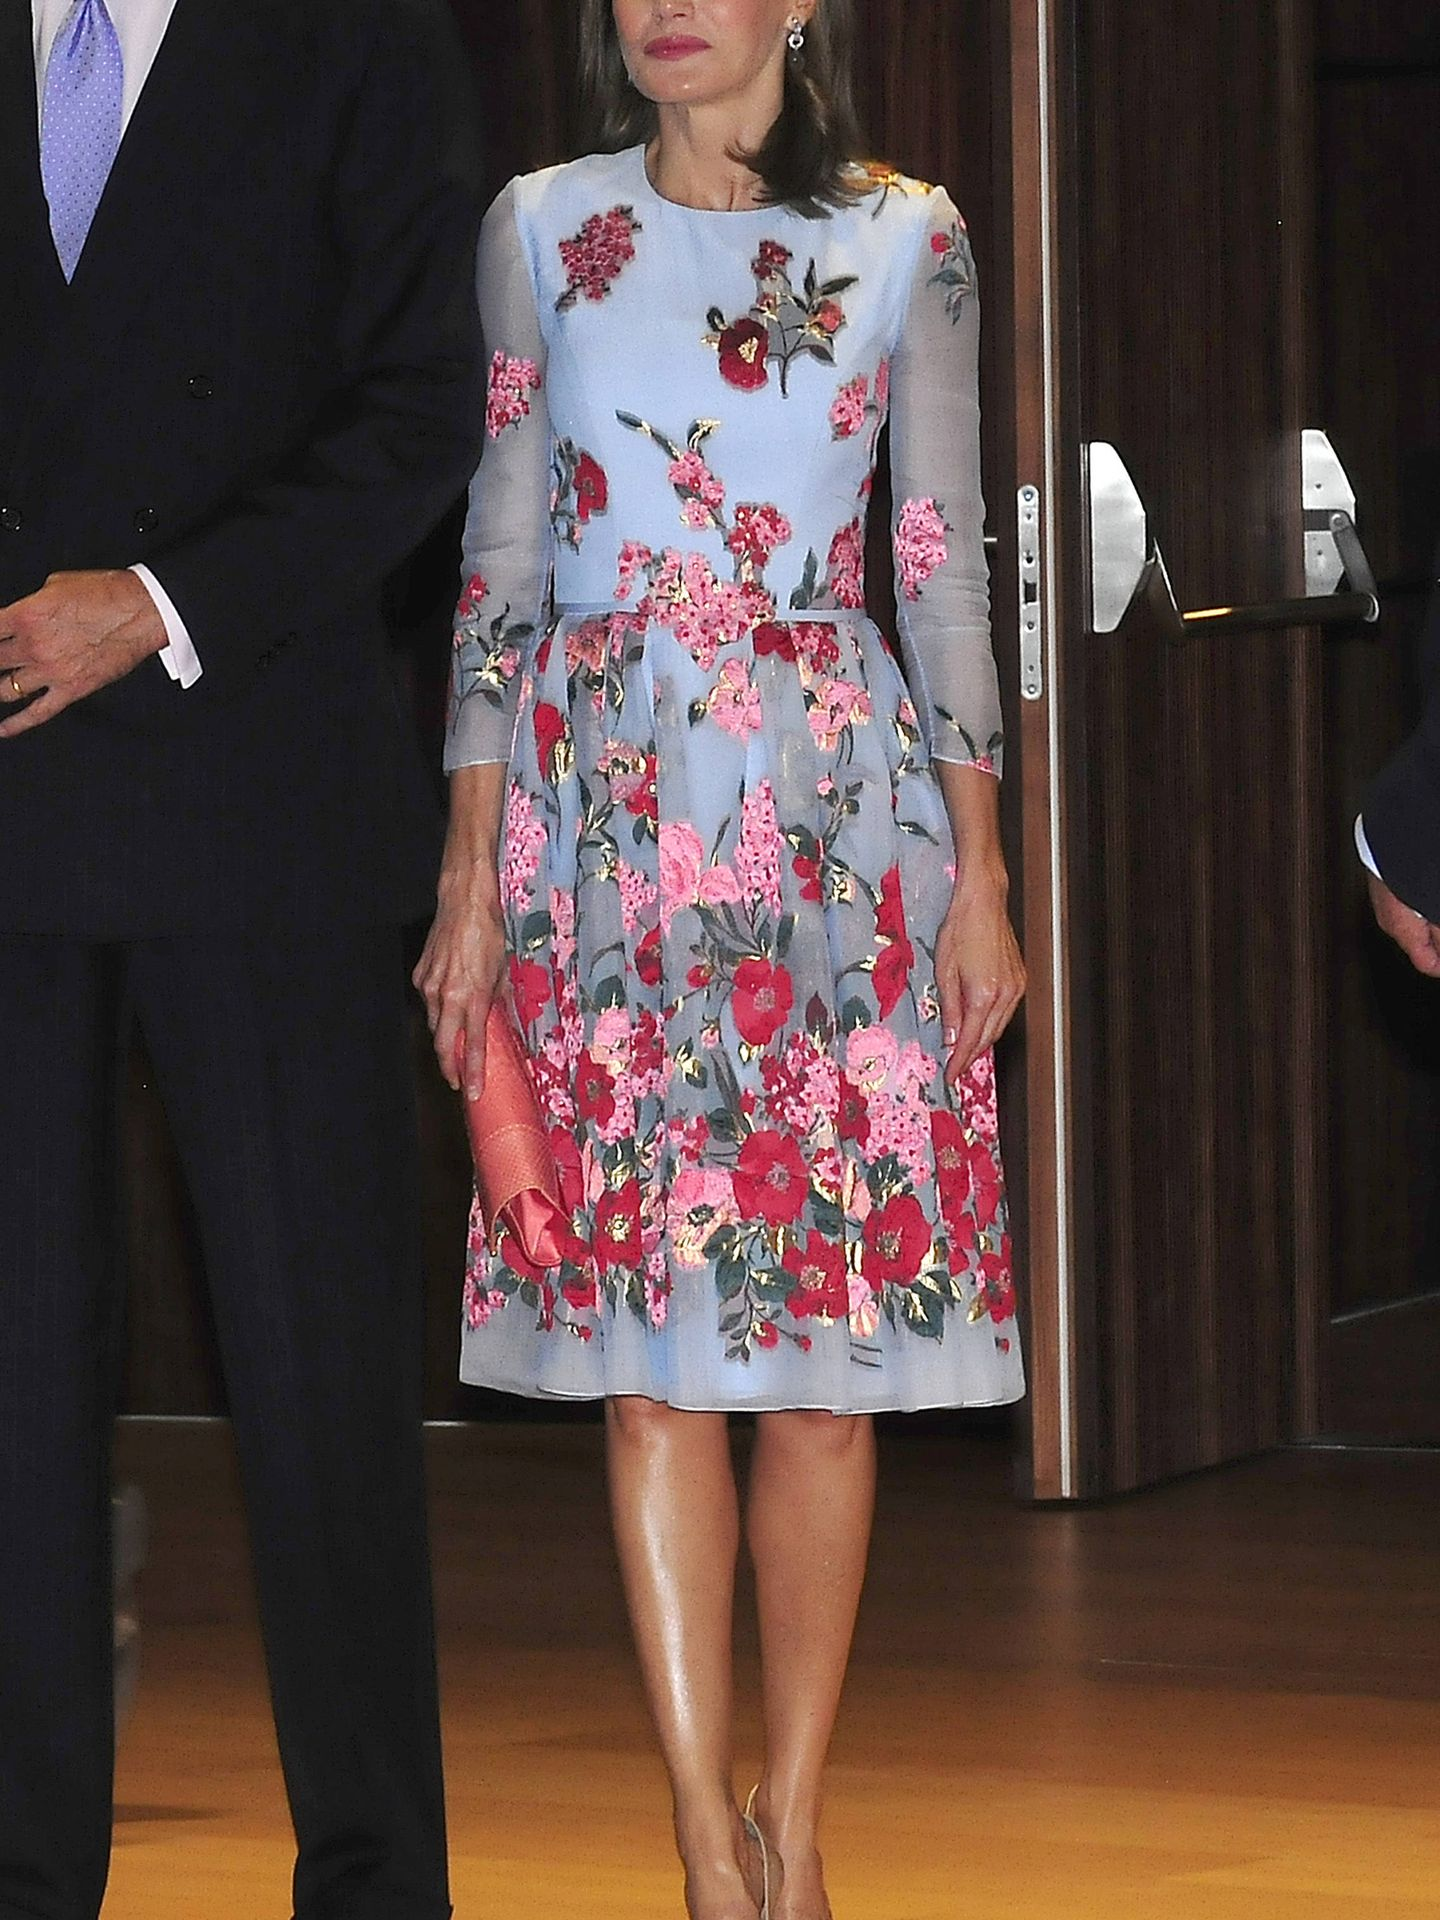 Spanish Queen Letizia during the inauguration of the new Palace of Congresses of Palma de Mallorca on Monday 25 September 2017.